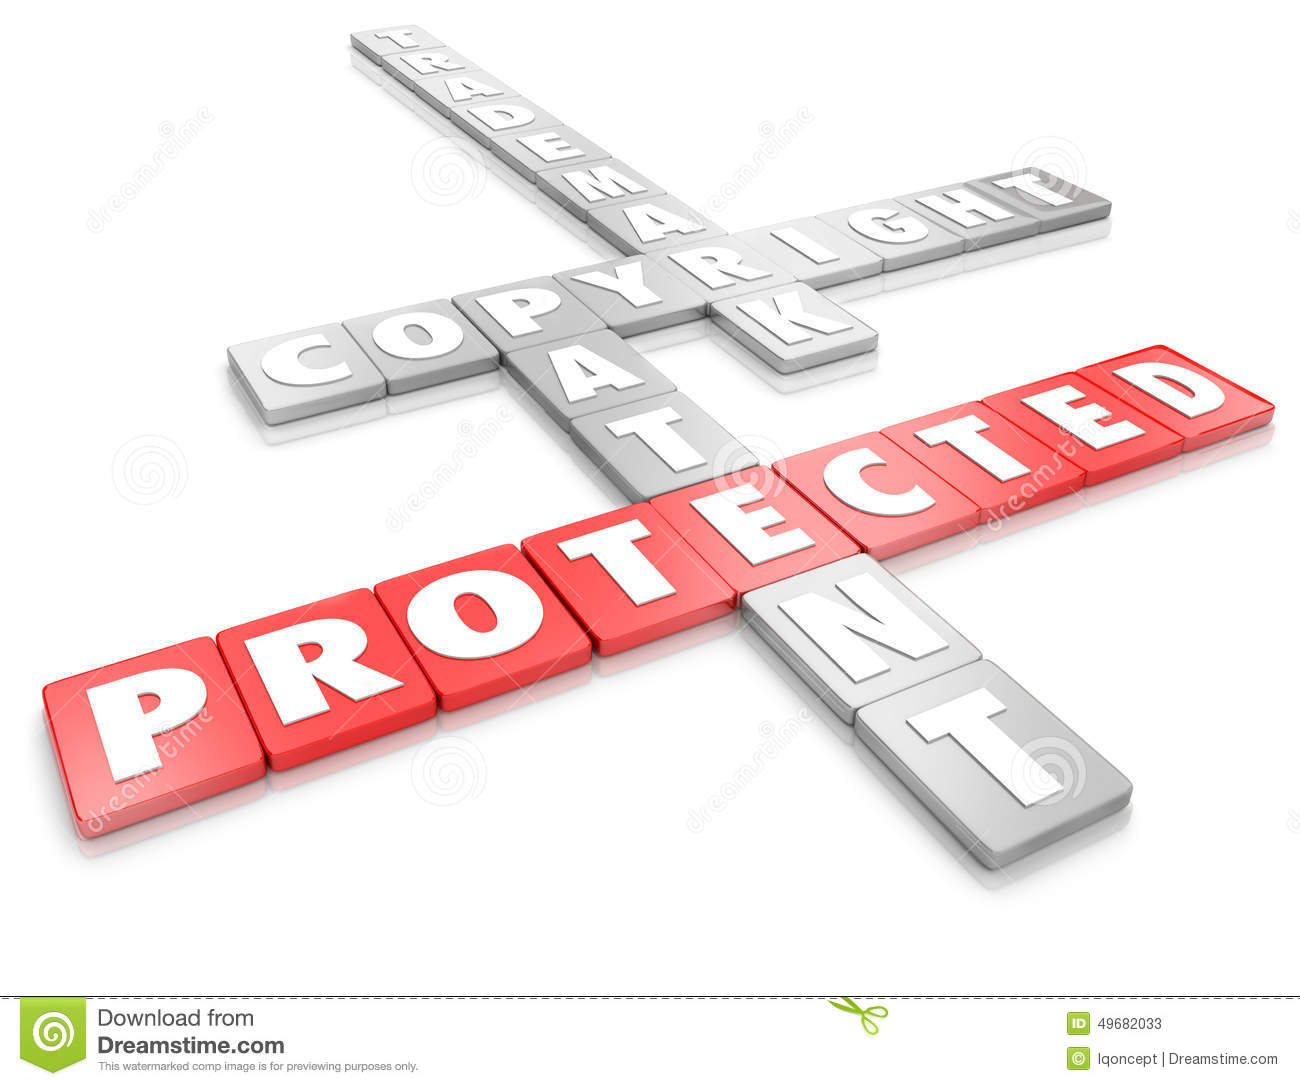 Intellectual Property Patent: Protected Intellectual Property Legal Copyright Trademark